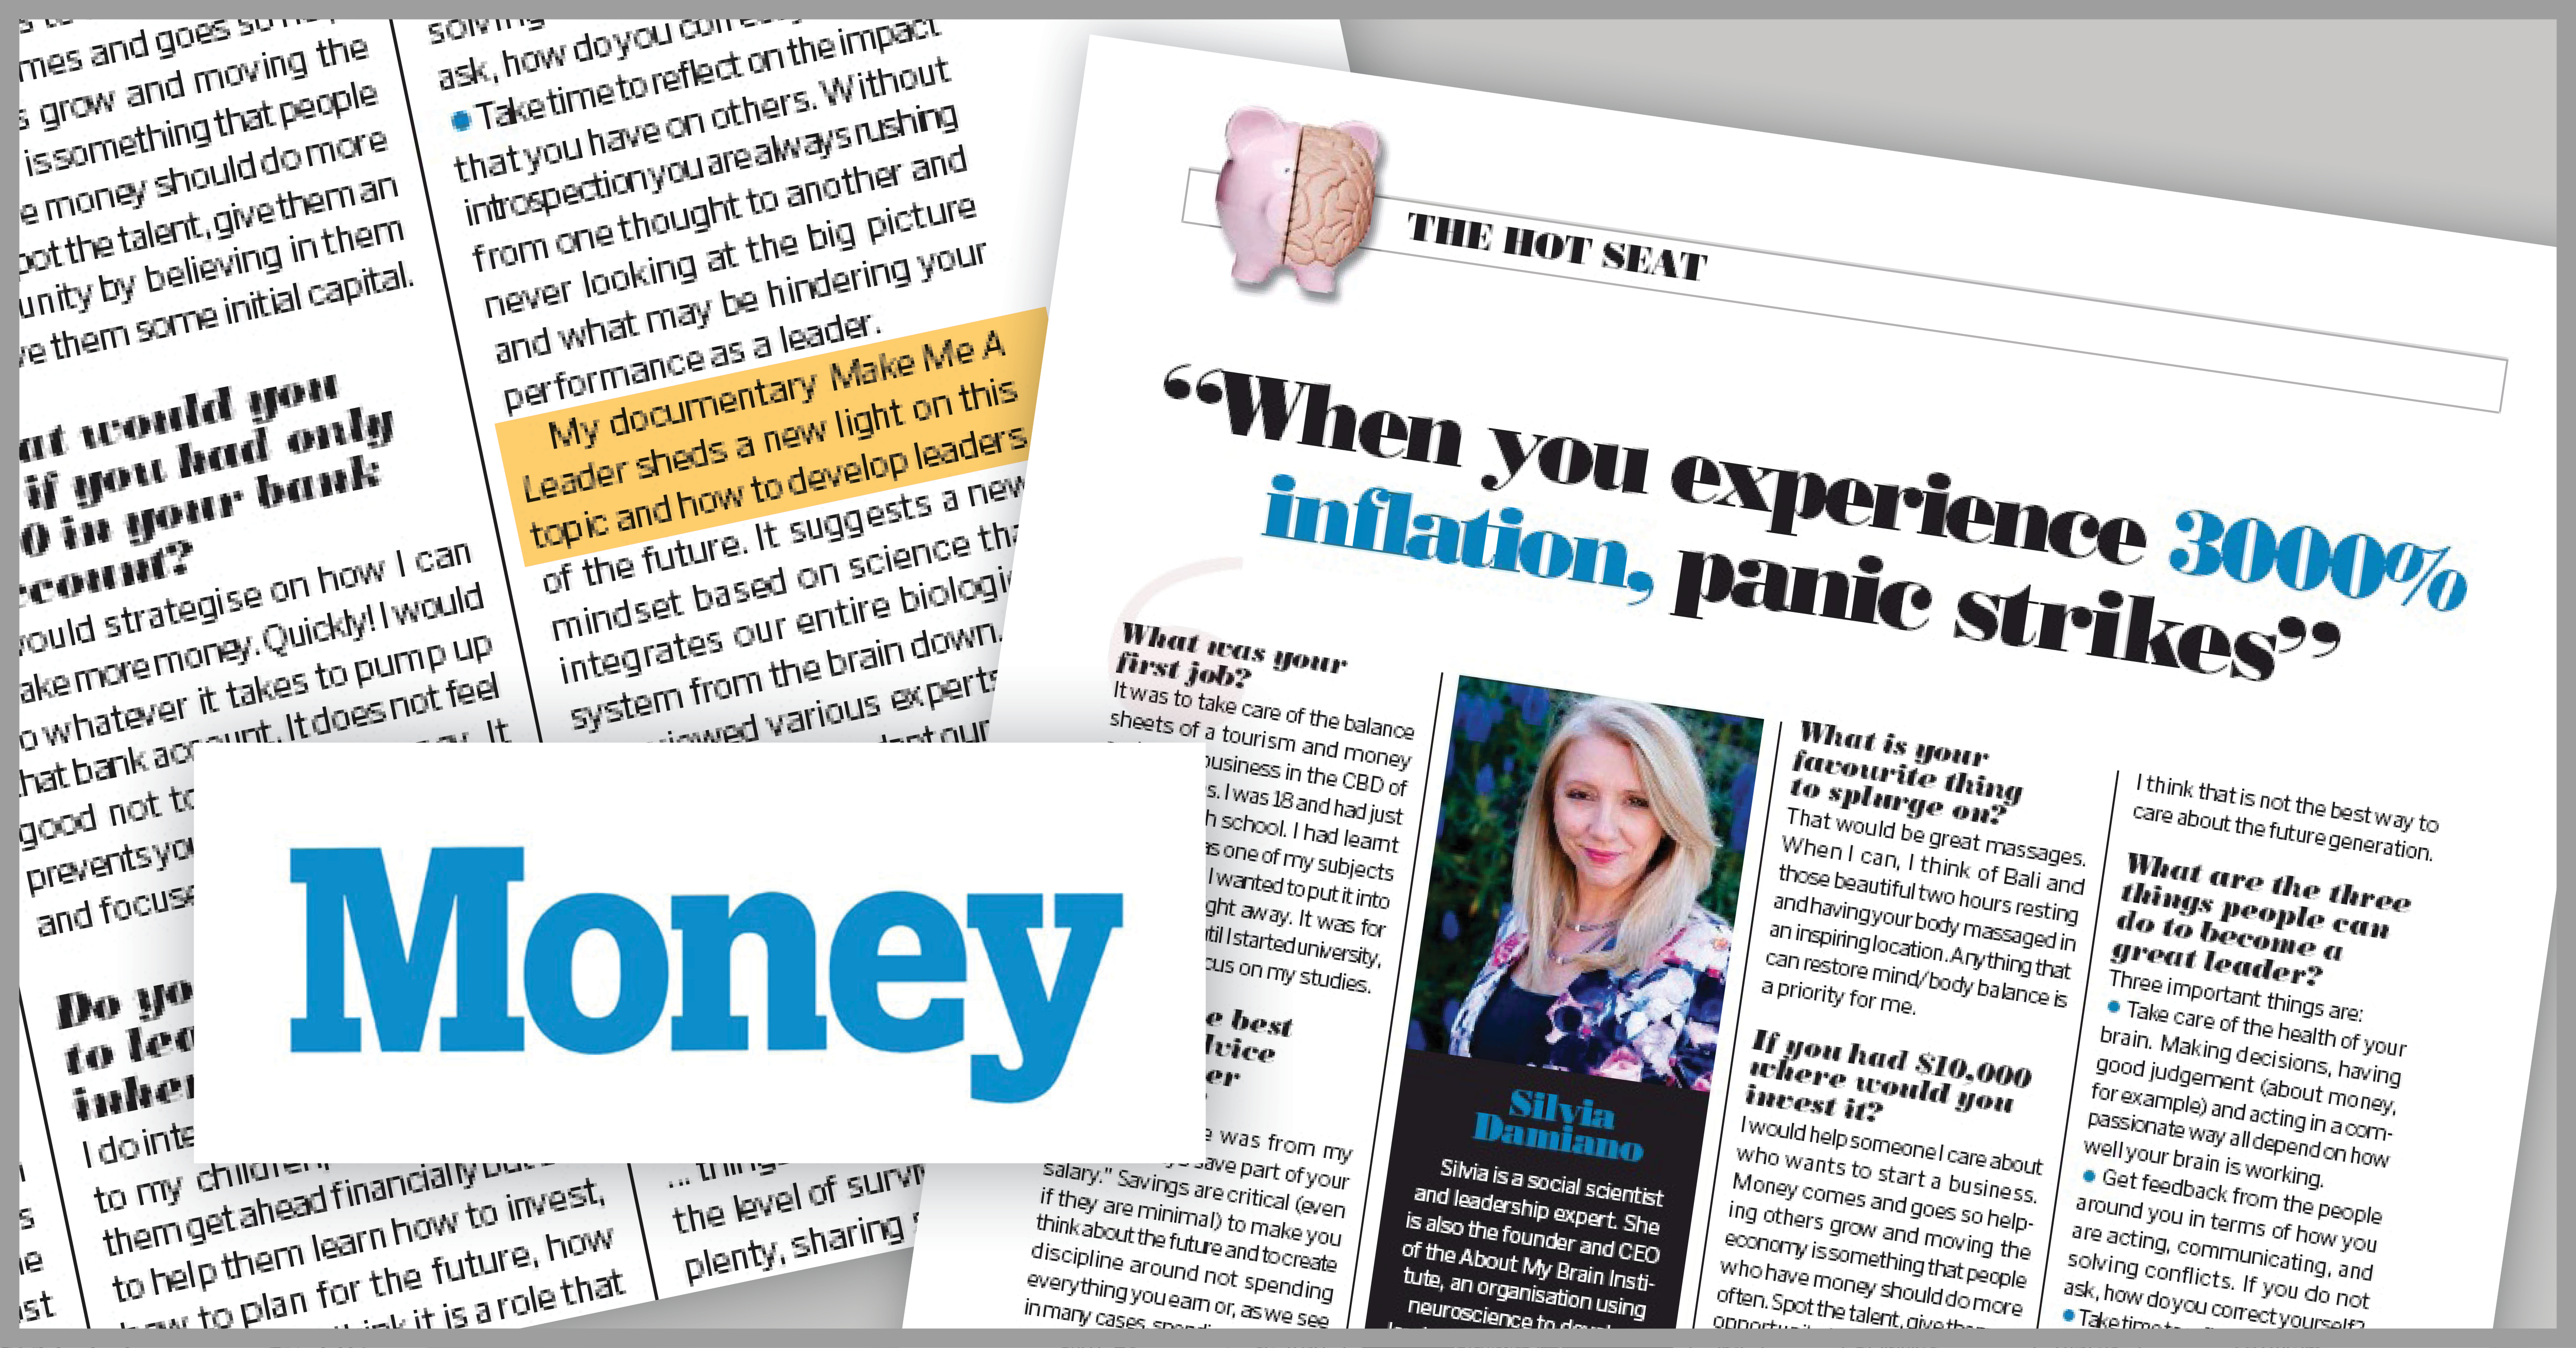 Money Magazine: When You Experience 3000% Inflation, Panic Strikes!